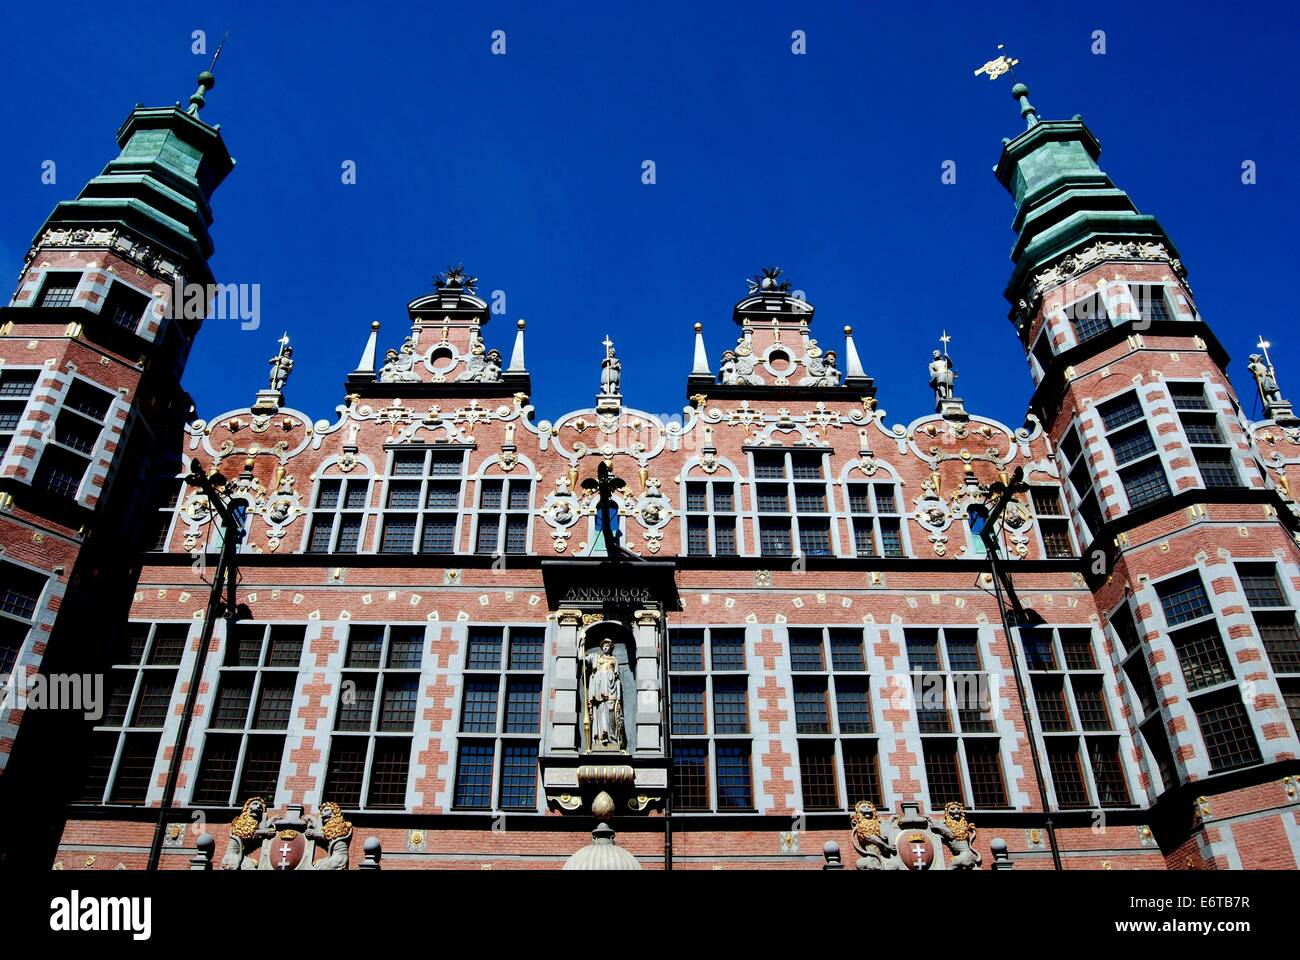 GDANSK, POLAND:  Renaissance gables and towers at the Arsenal, built 1600-1609, a fine example of the Dutch Mannerist - Stock Image